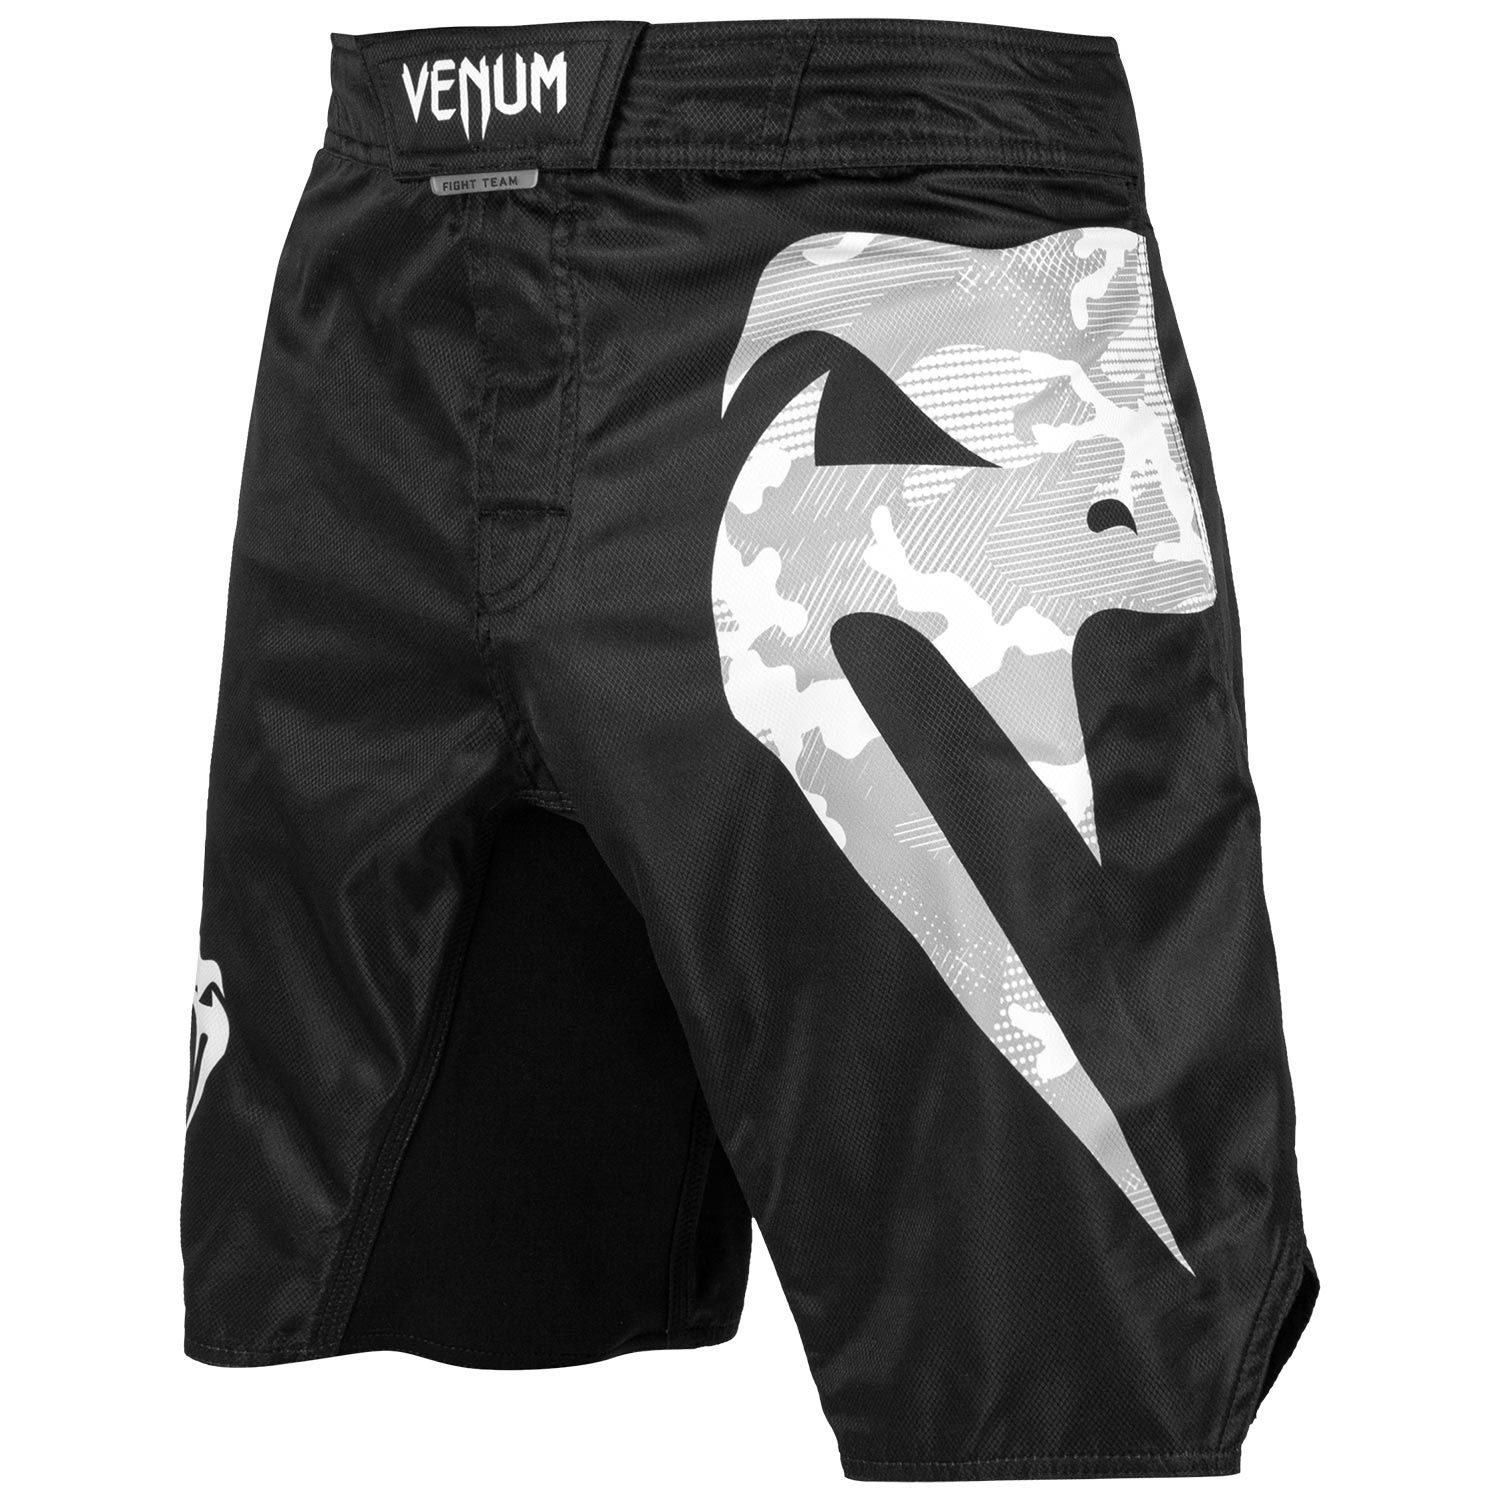 Шорты Venum Light 3.0 - Black/White Camo